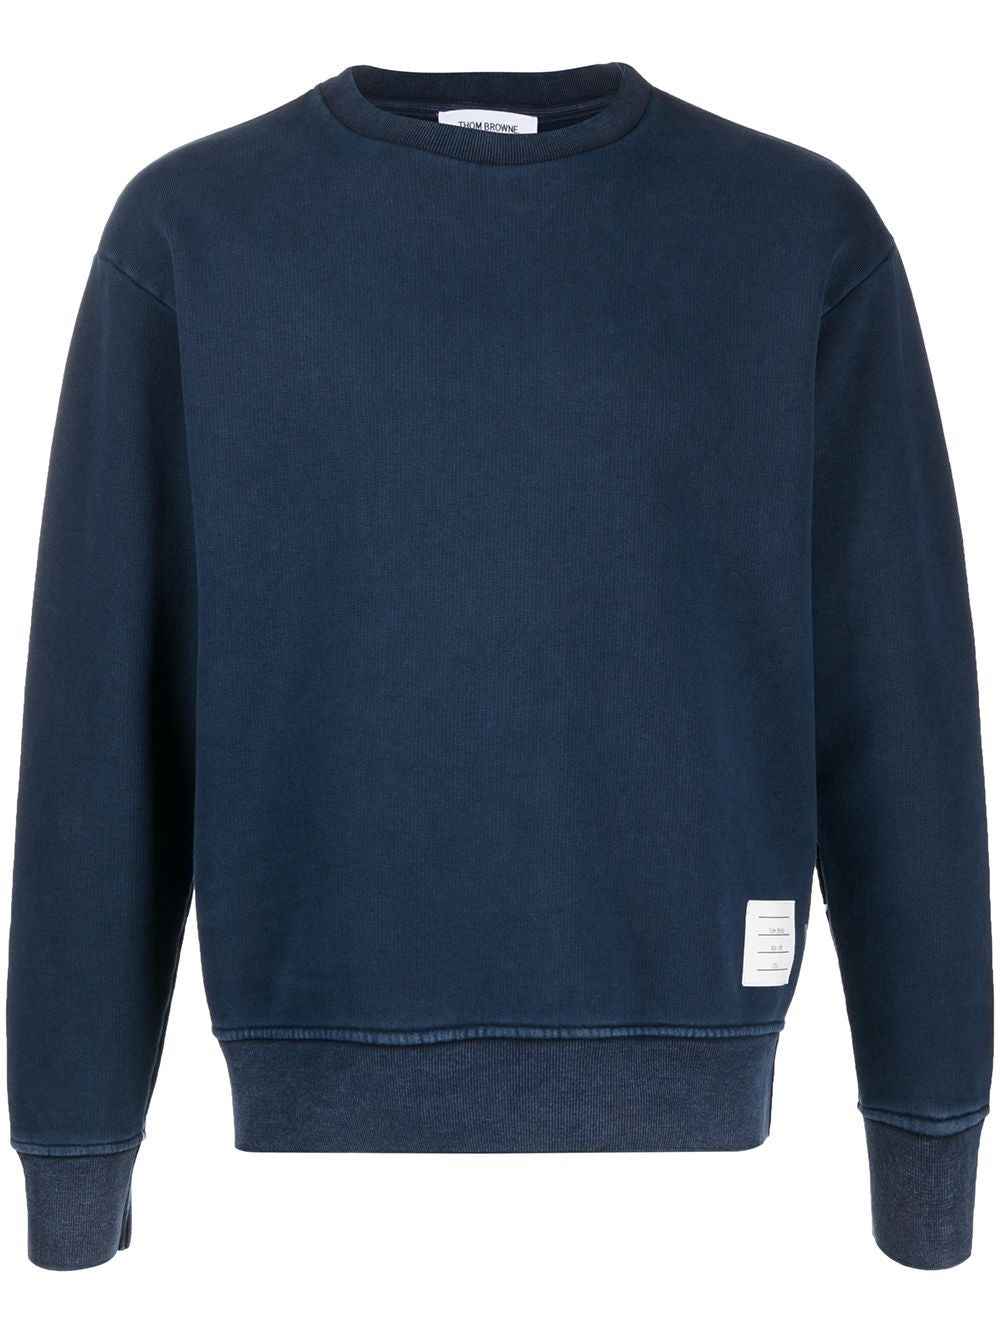 Navy Garment Dyed Crewneck Sweatshirt